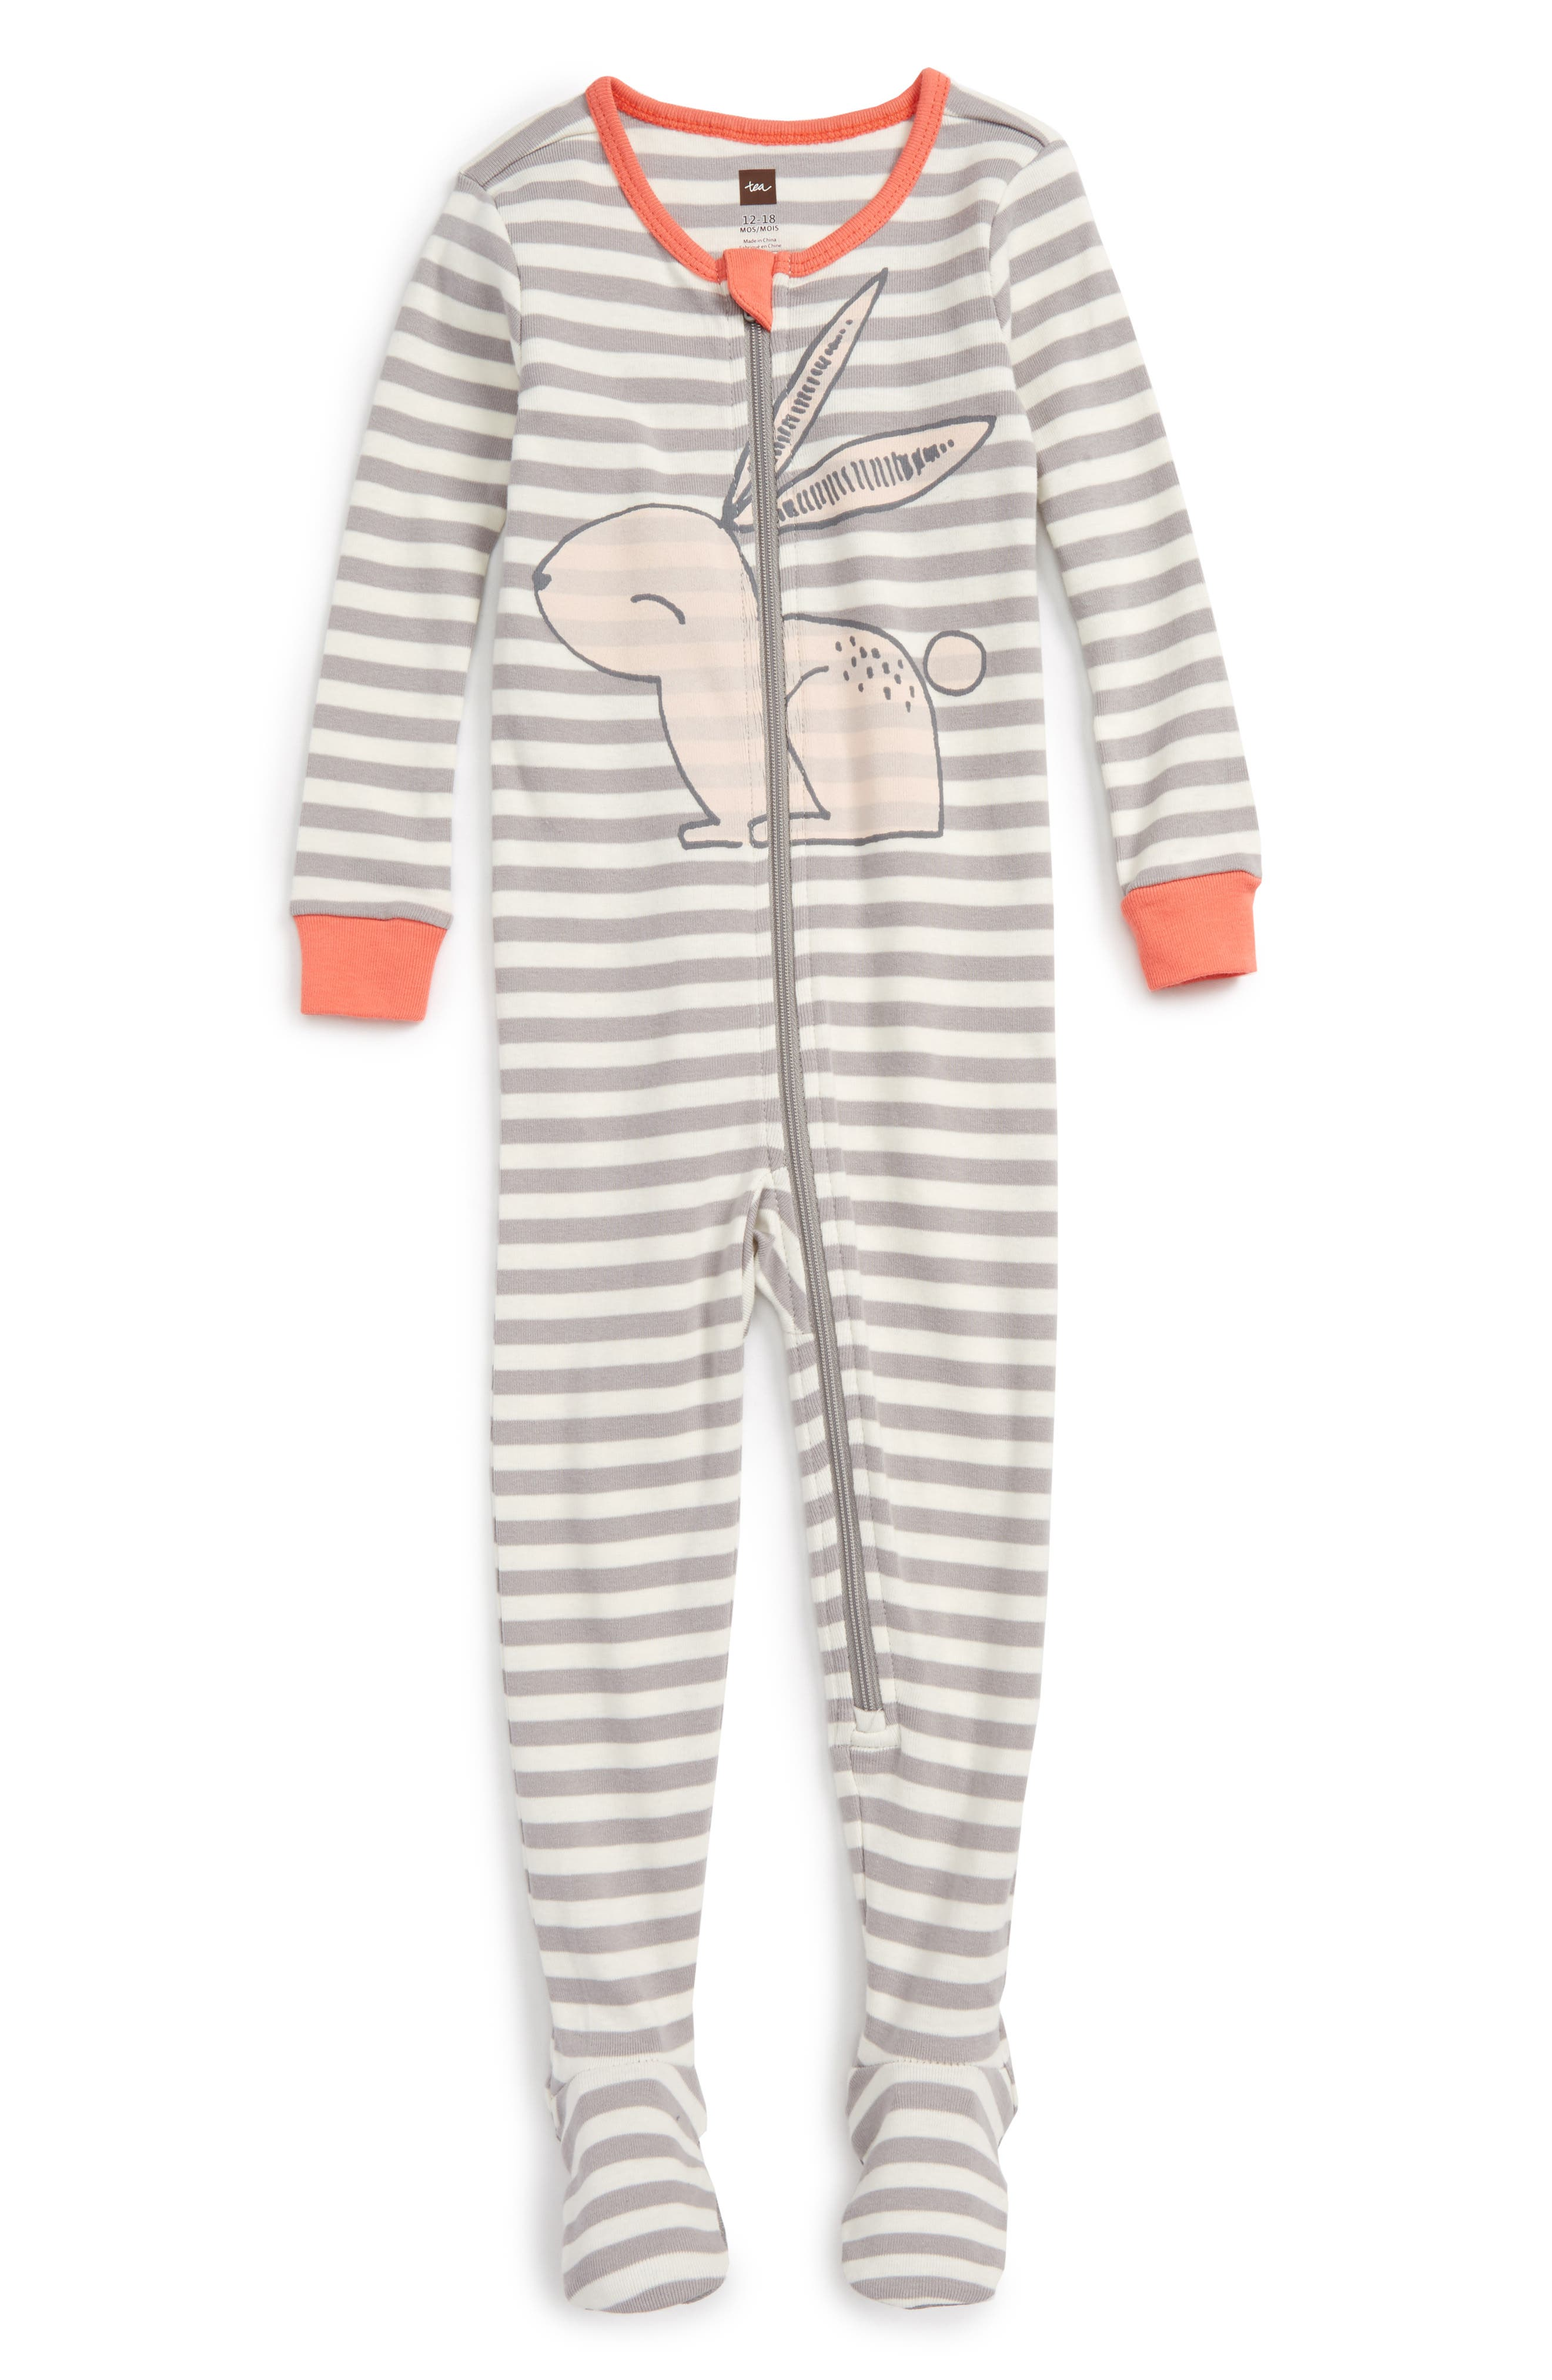 Rabaid Fitted One-Piece Pajamas,                         Main,                         color, Storm Grey